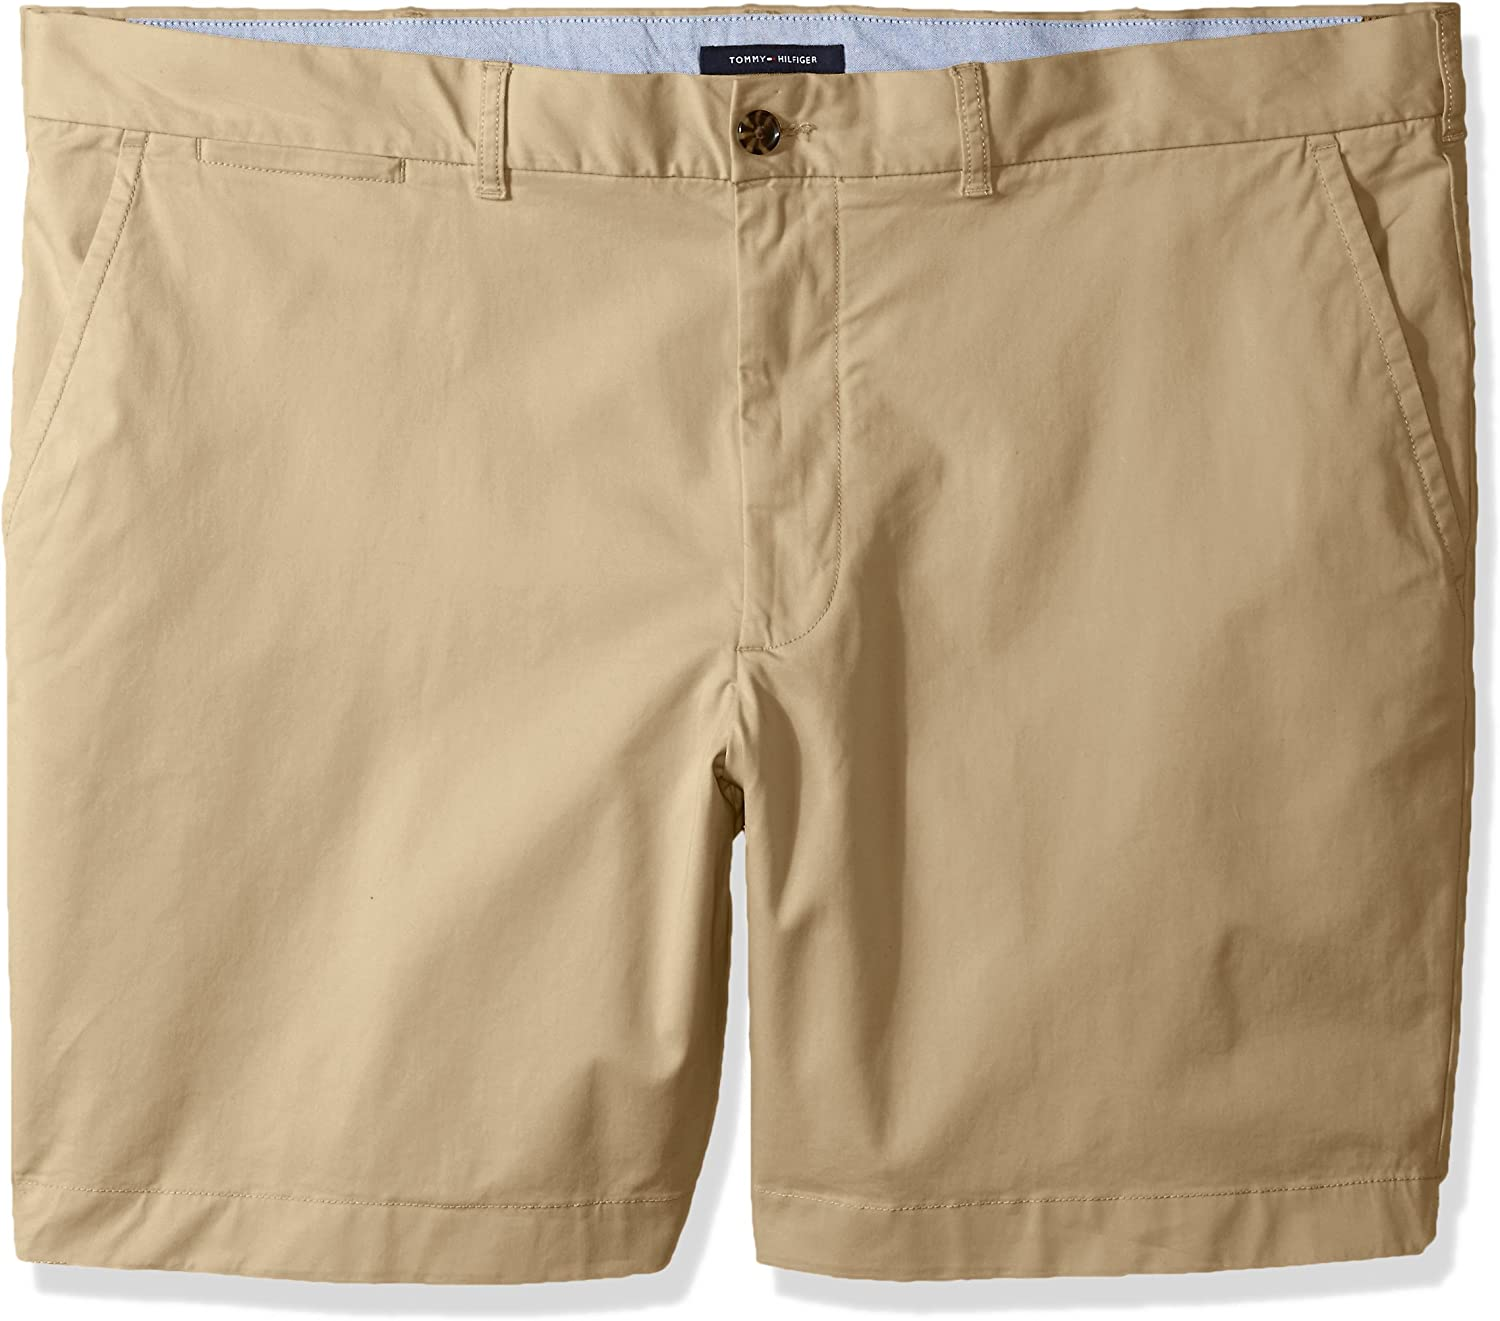 big and tall tommy hilfiger shorts